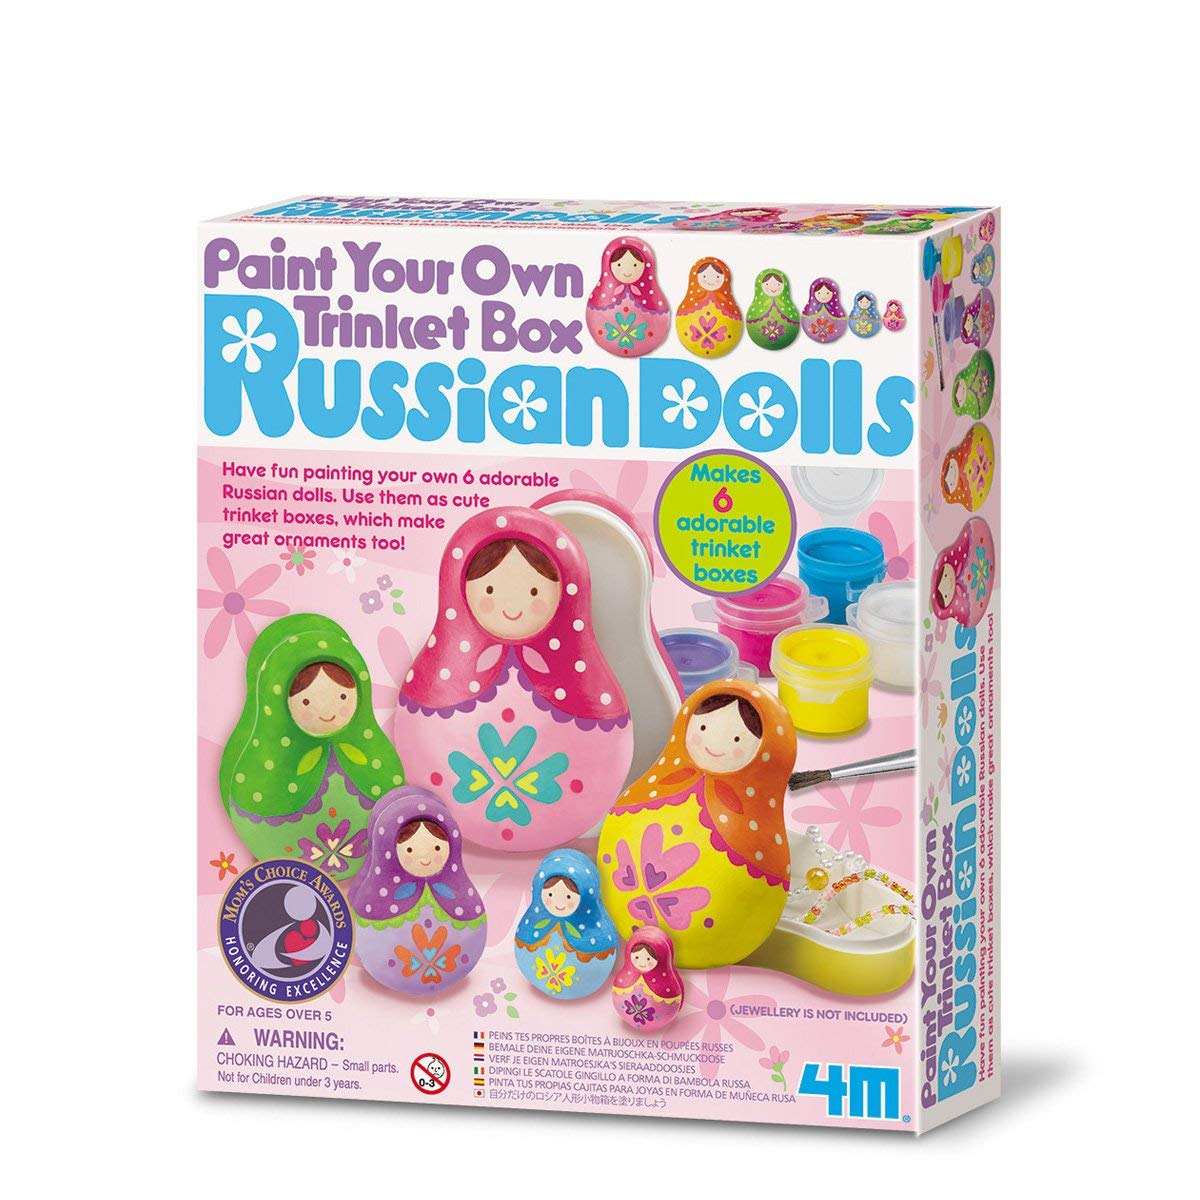 Paint Your Own Trinket Box Russian Dolls